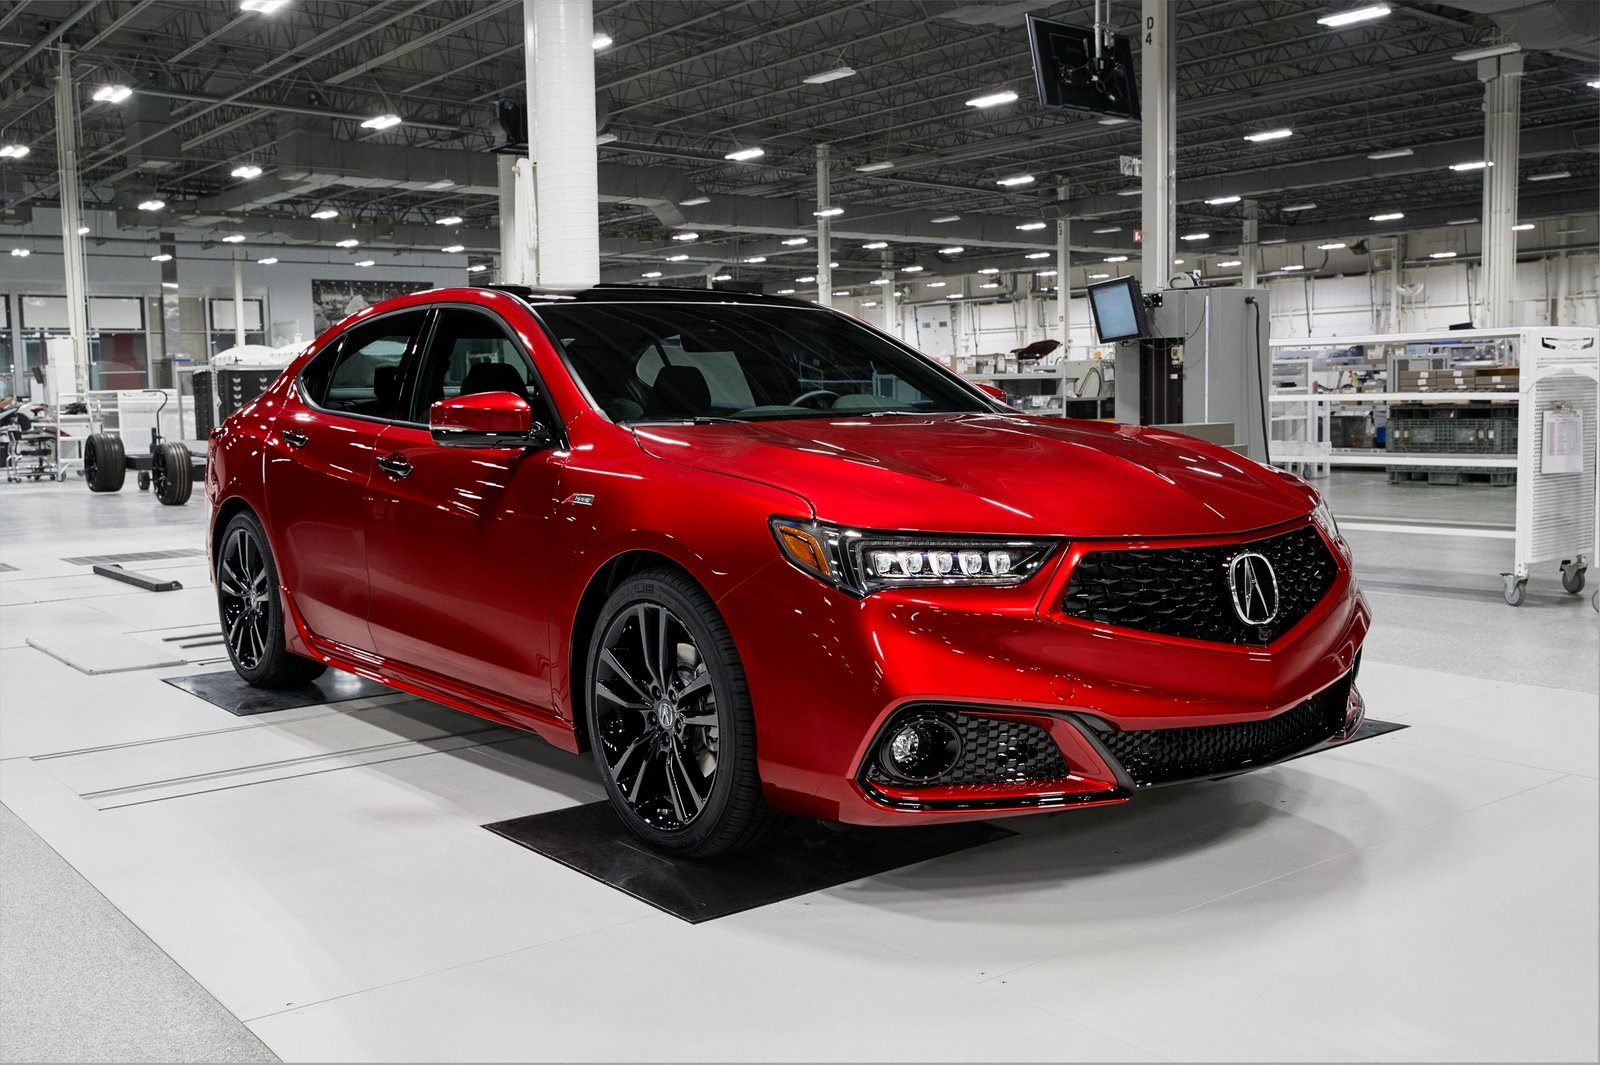 2019 Acura TLX PMC Edition | Top Speed